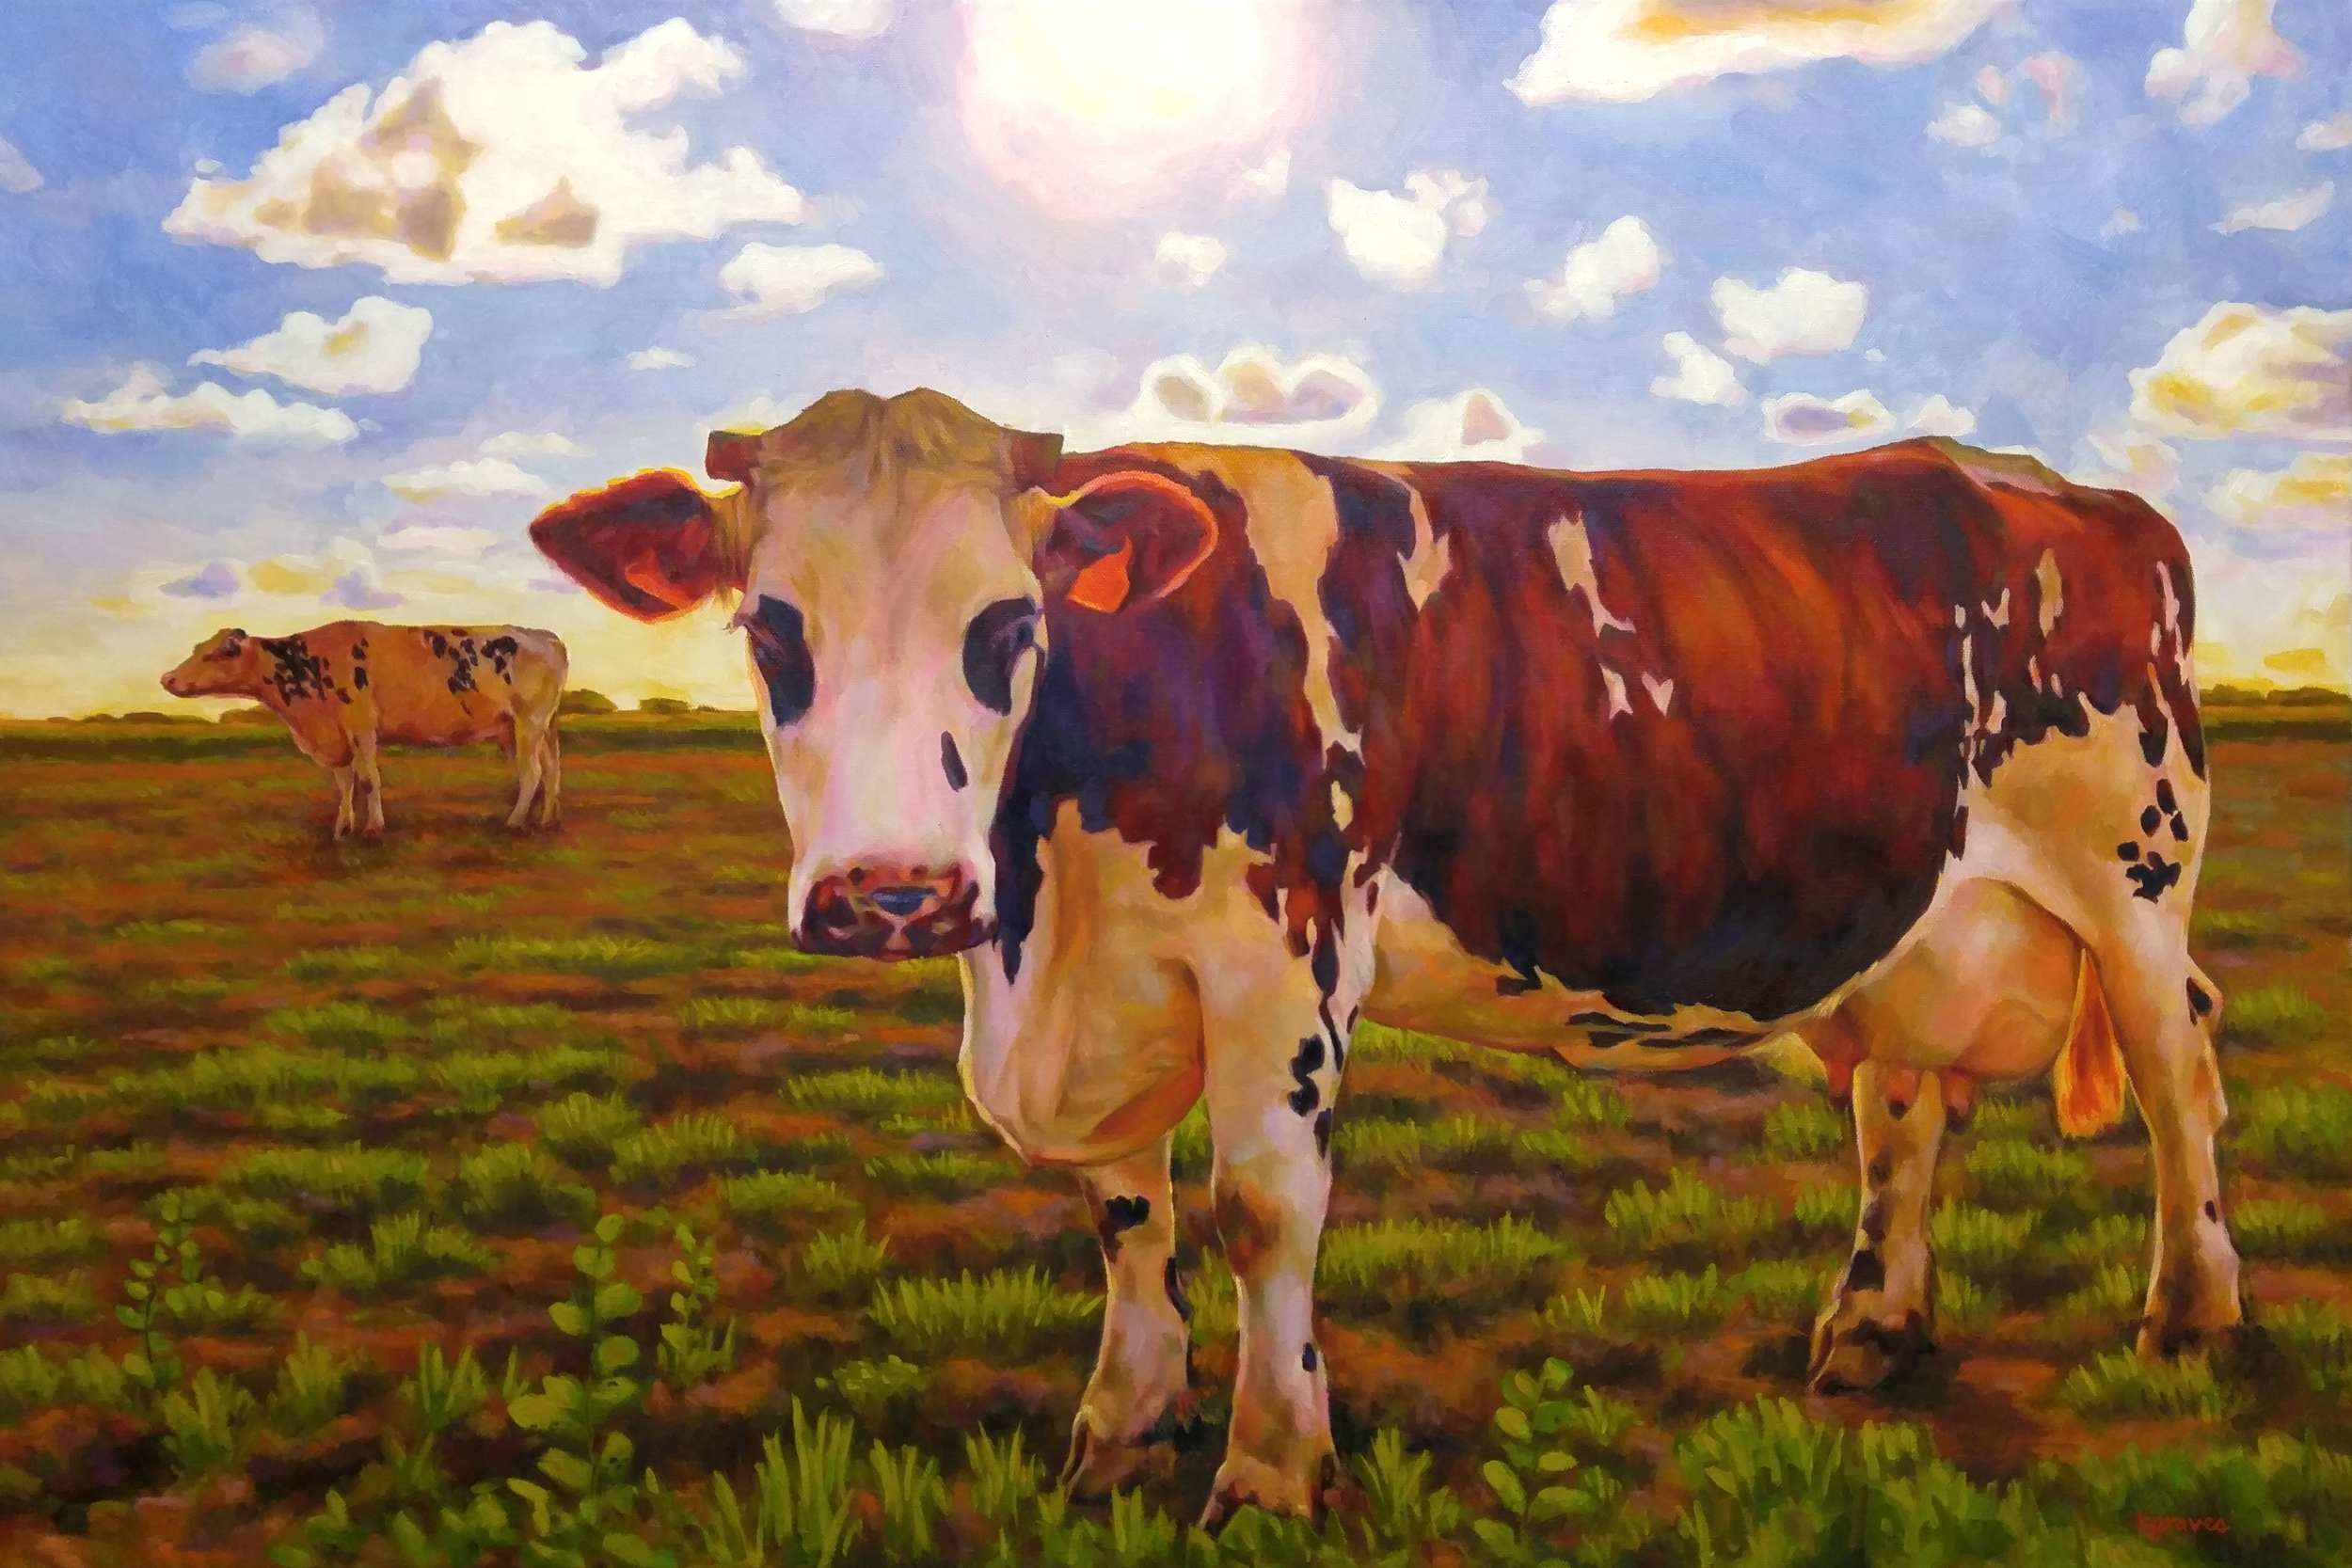 The Cows of France, 24x36